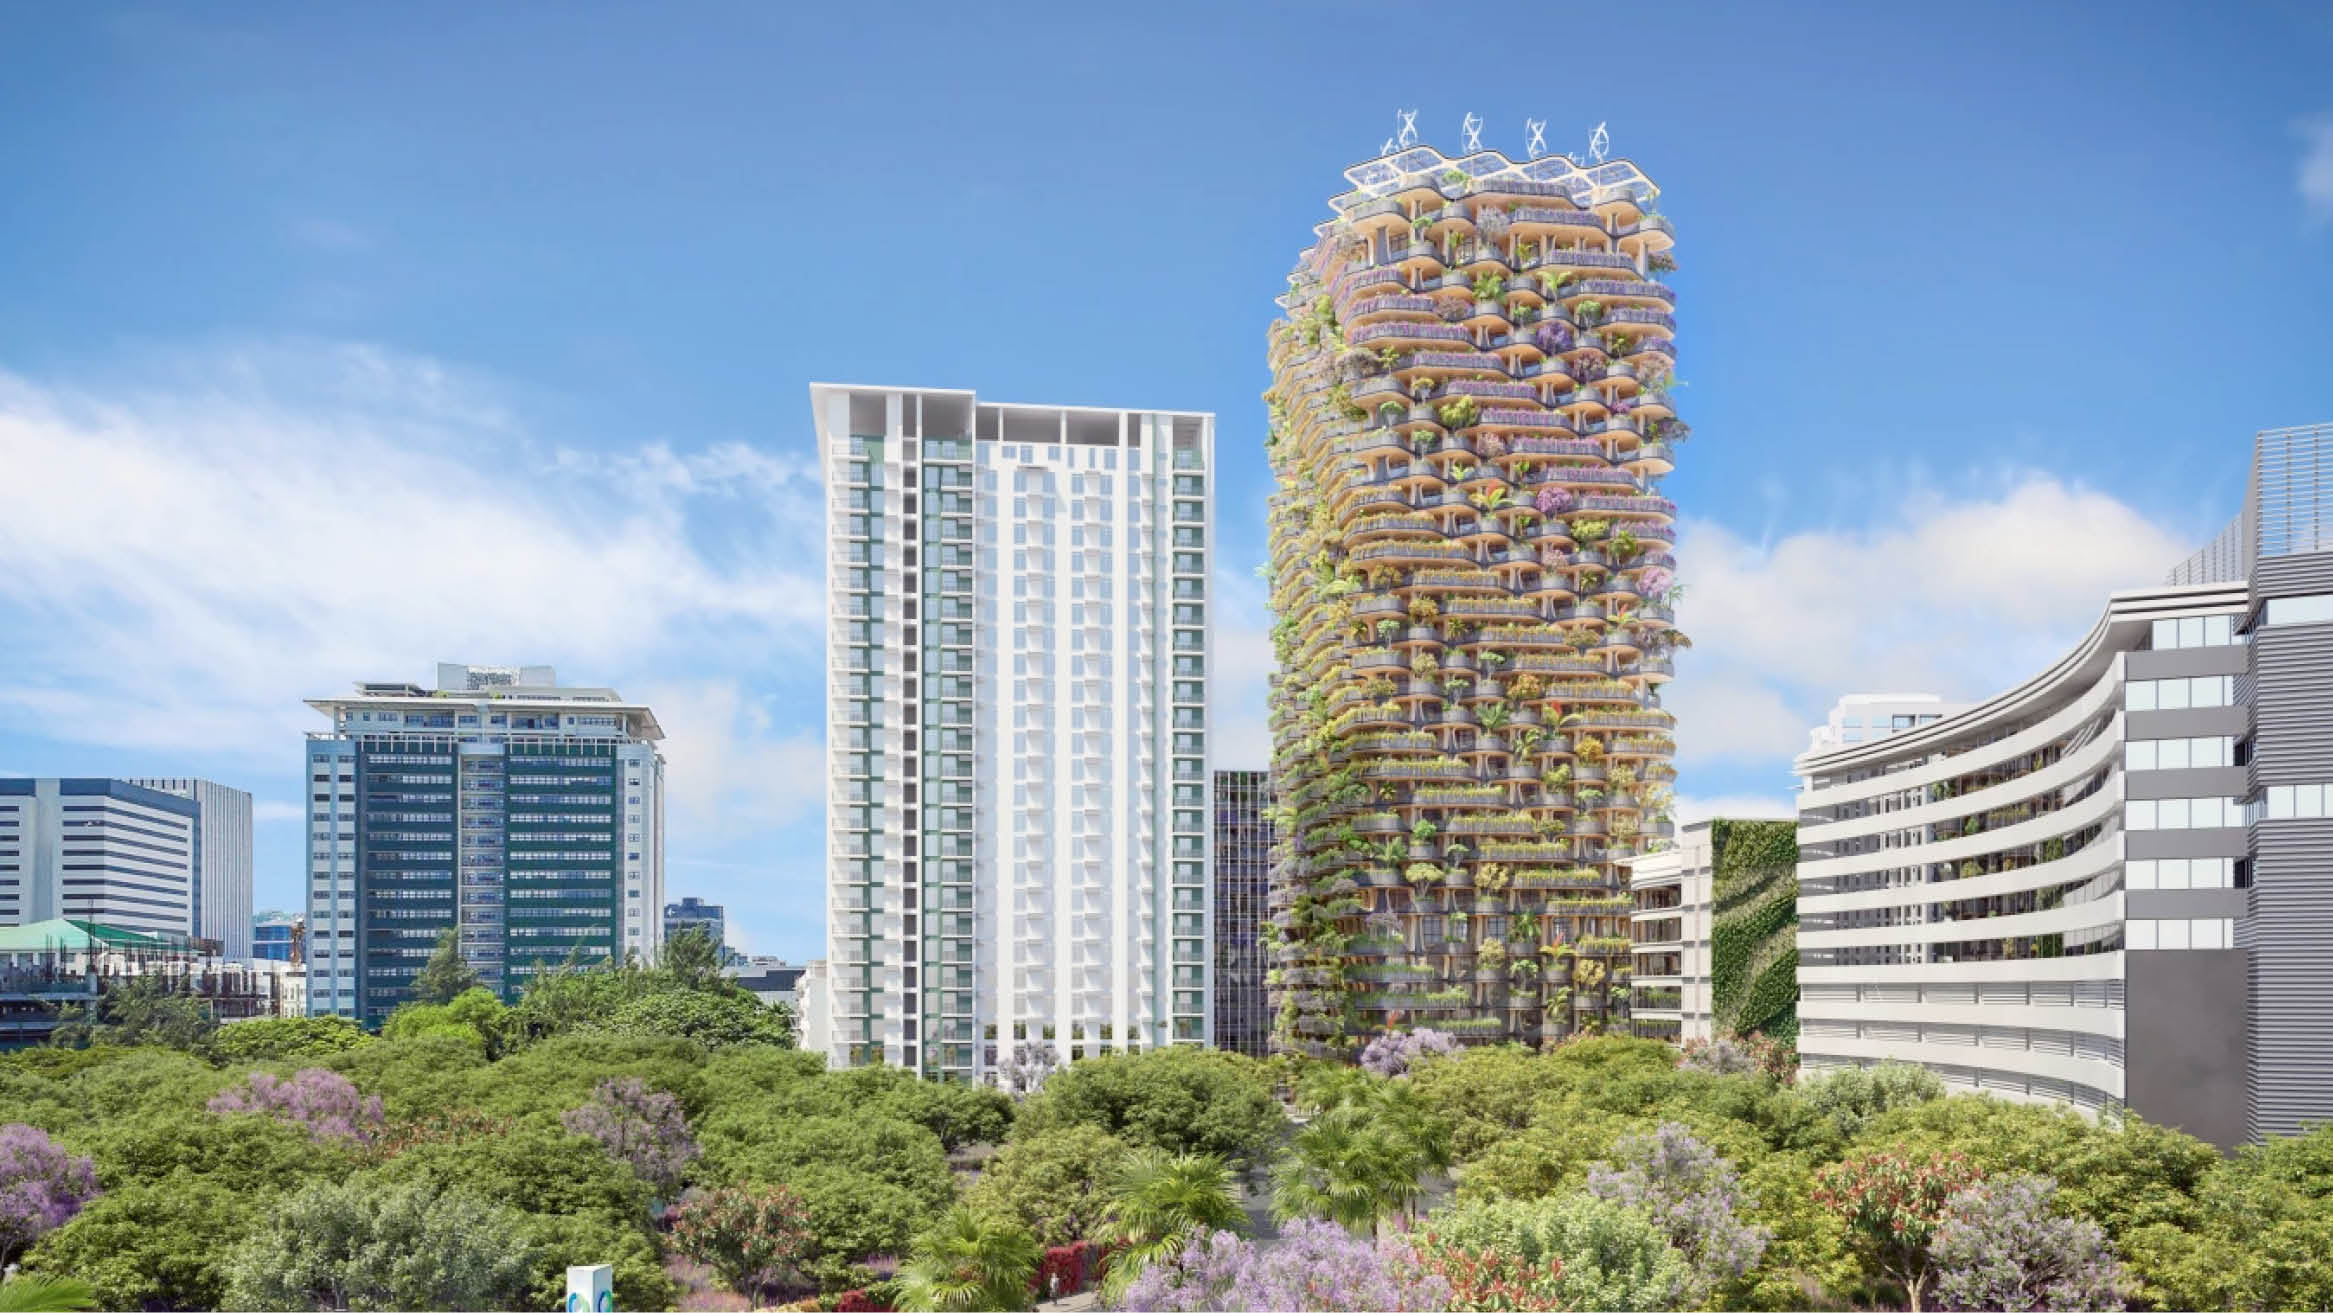 """Featured image for """"Over 30,000 plants, shrubs and trees would grow from 377-ft timber tower"""""""